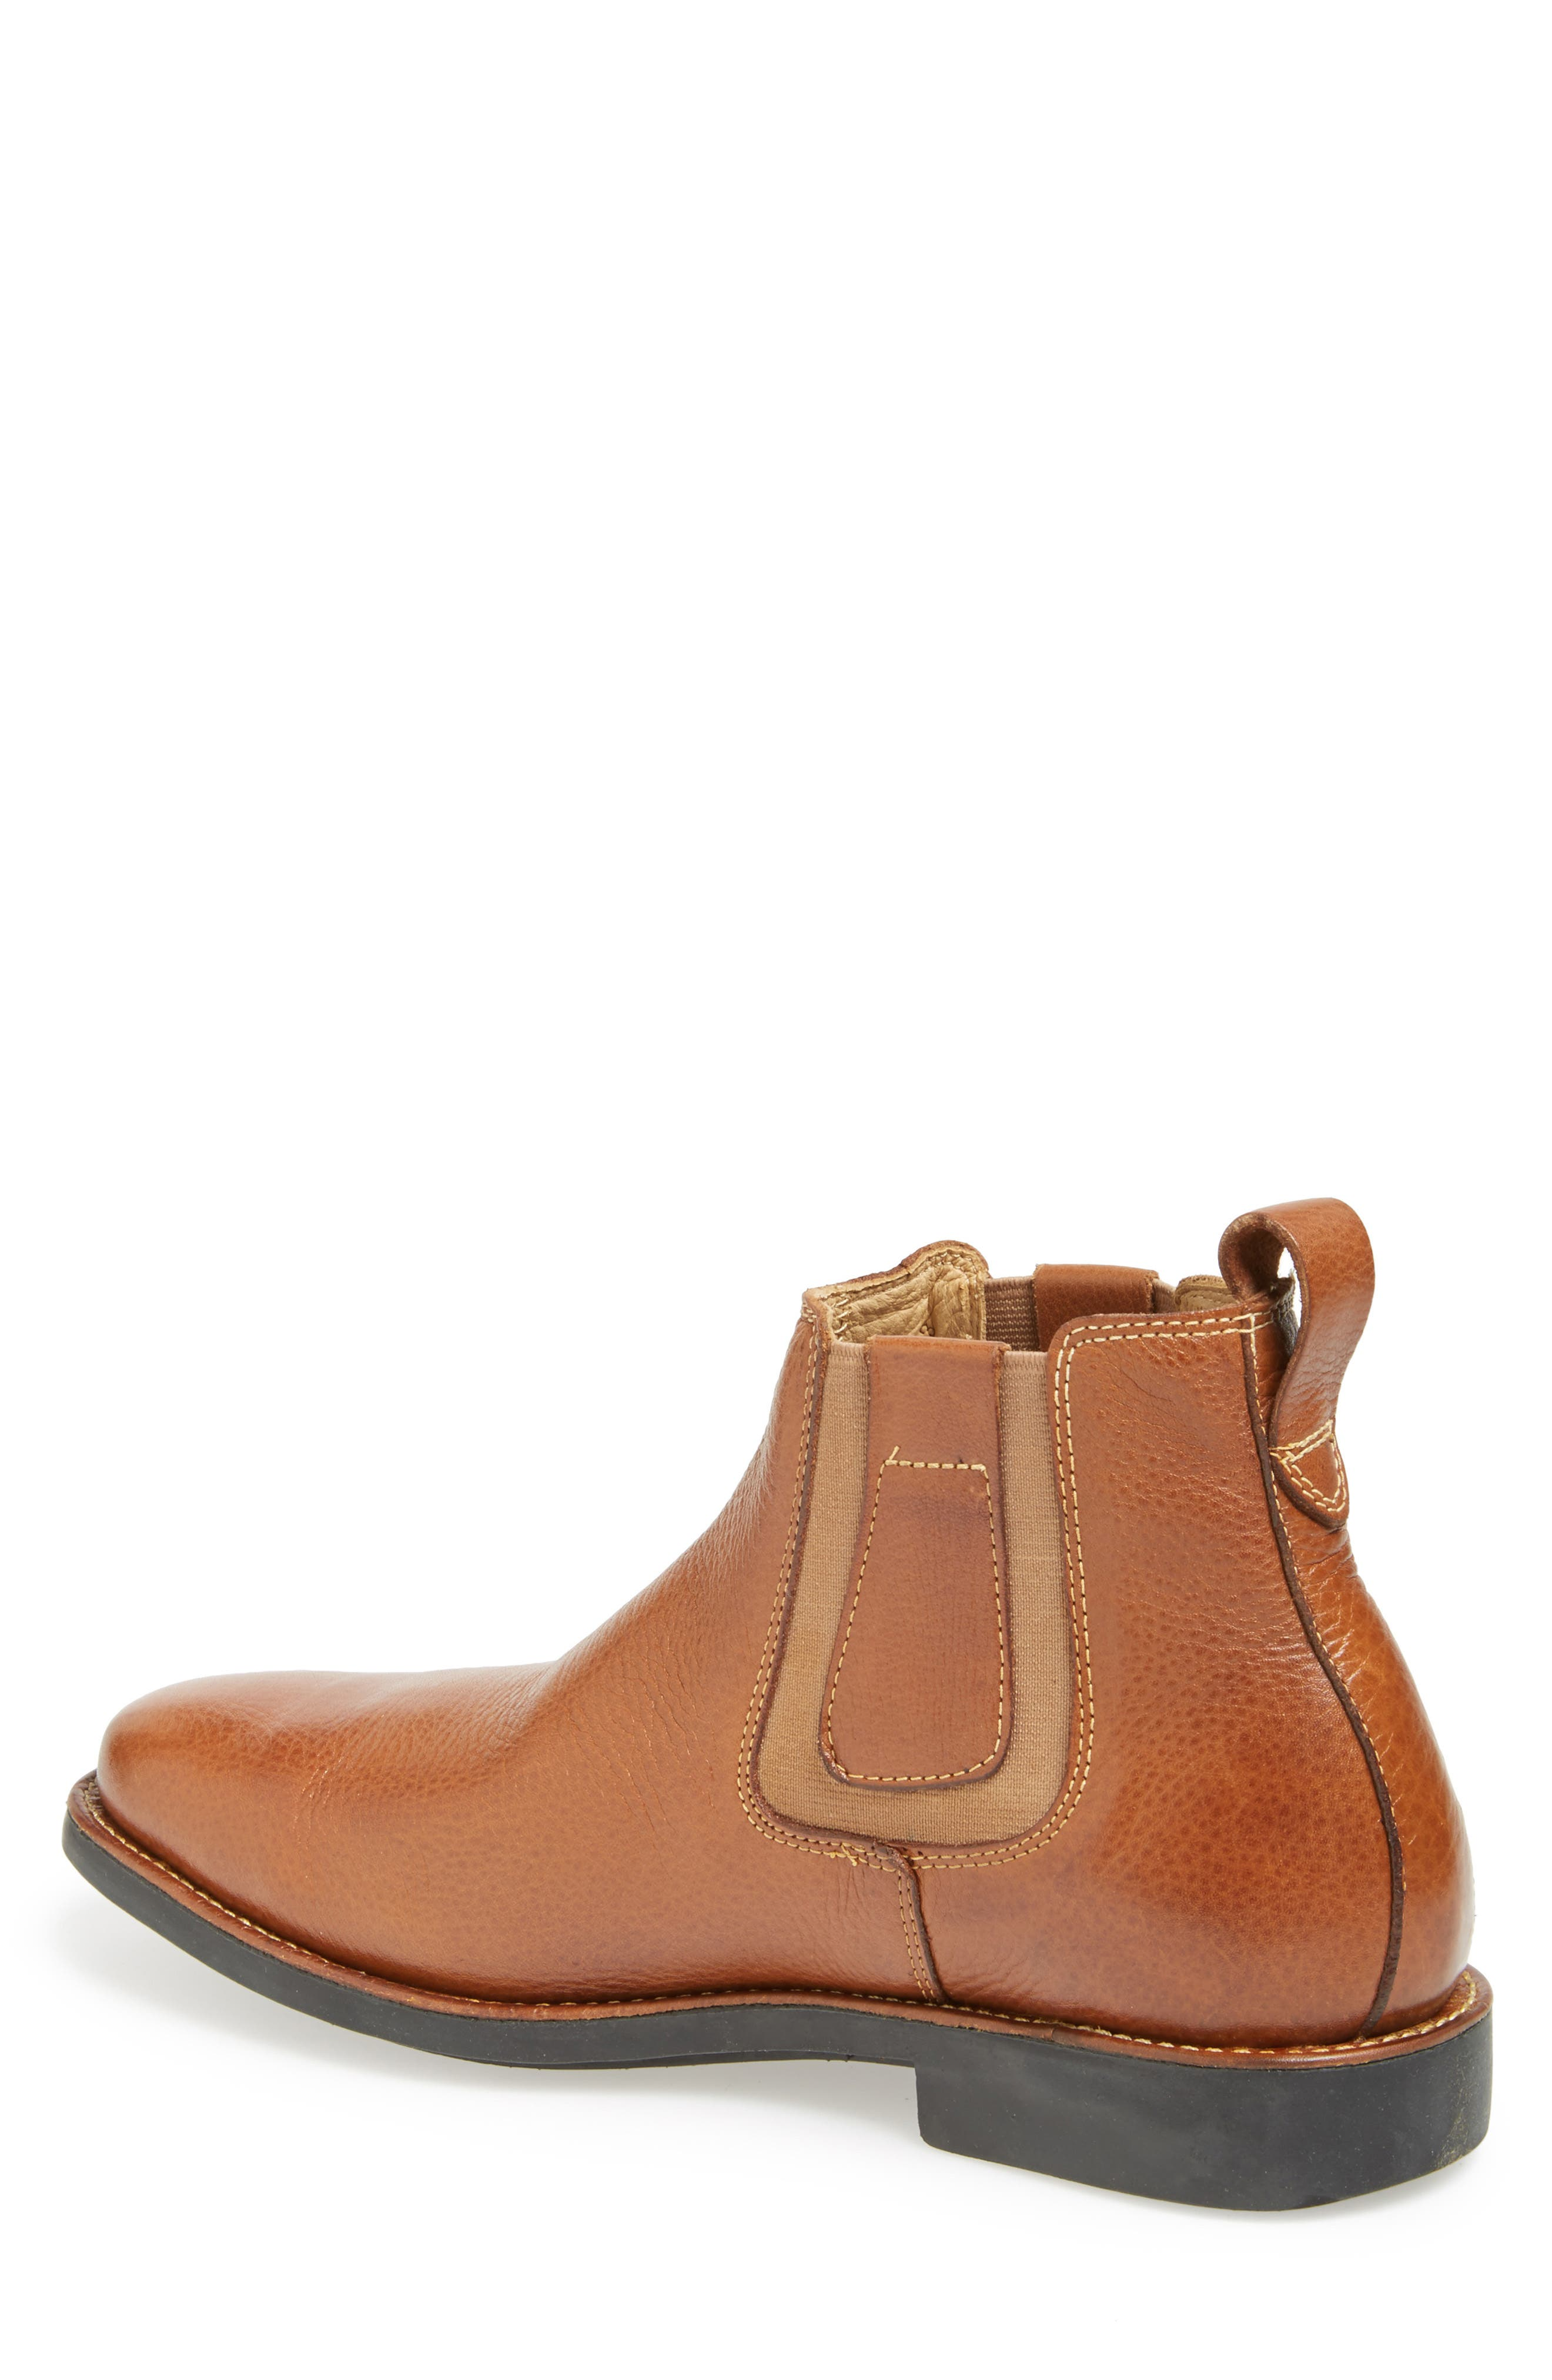 Natal Chelsea Boot,                             Alternate thumbnail 2, color,                             205